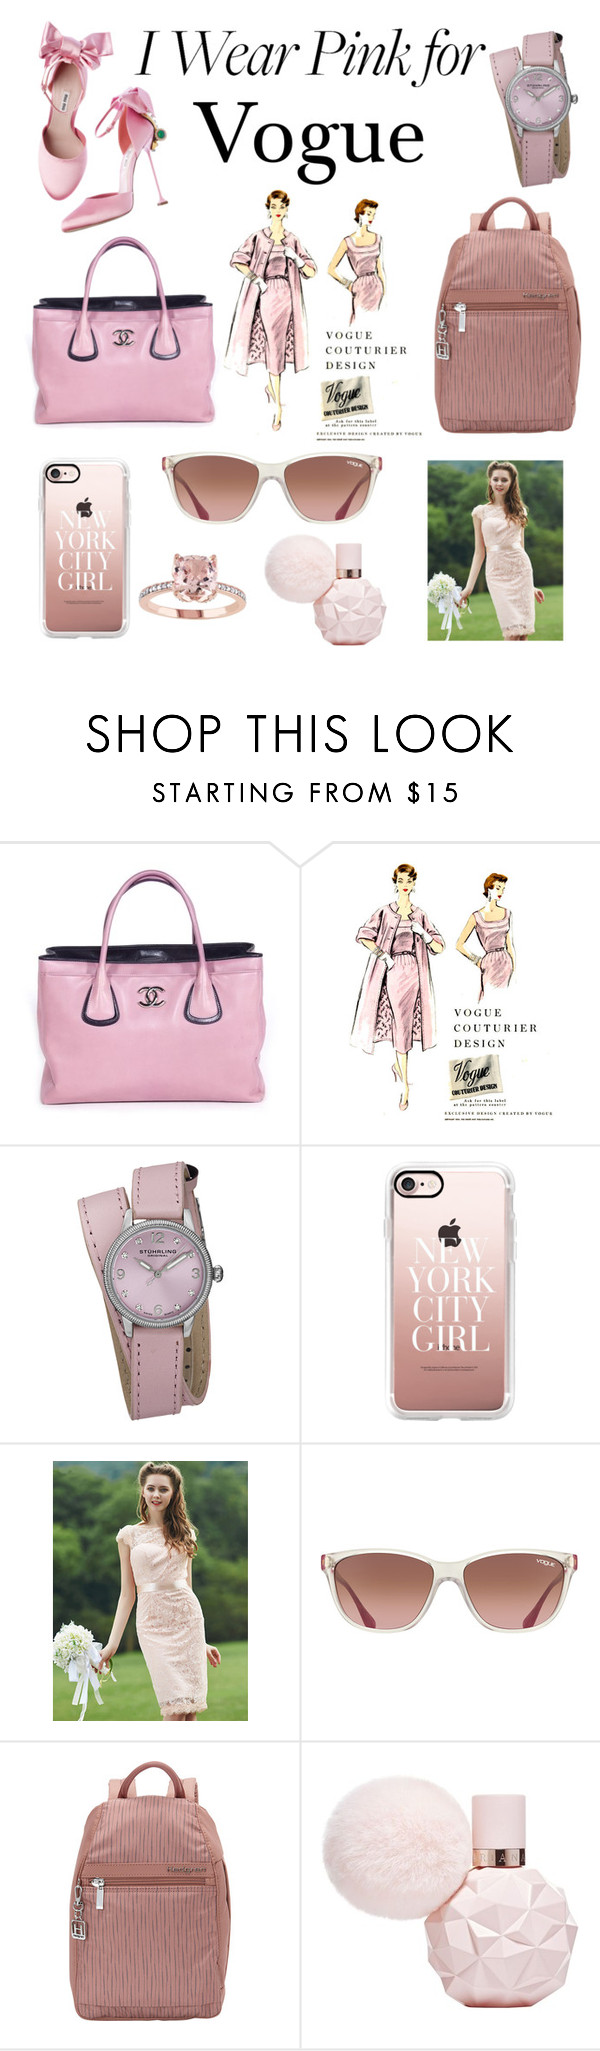 """I wear pink for ... contest"" by fordhamemily ❤ liked on Polyvore featuring Chanel, Stührling, Casetify, Vogue Eyewear, Hedgren and IWearPinkFor"